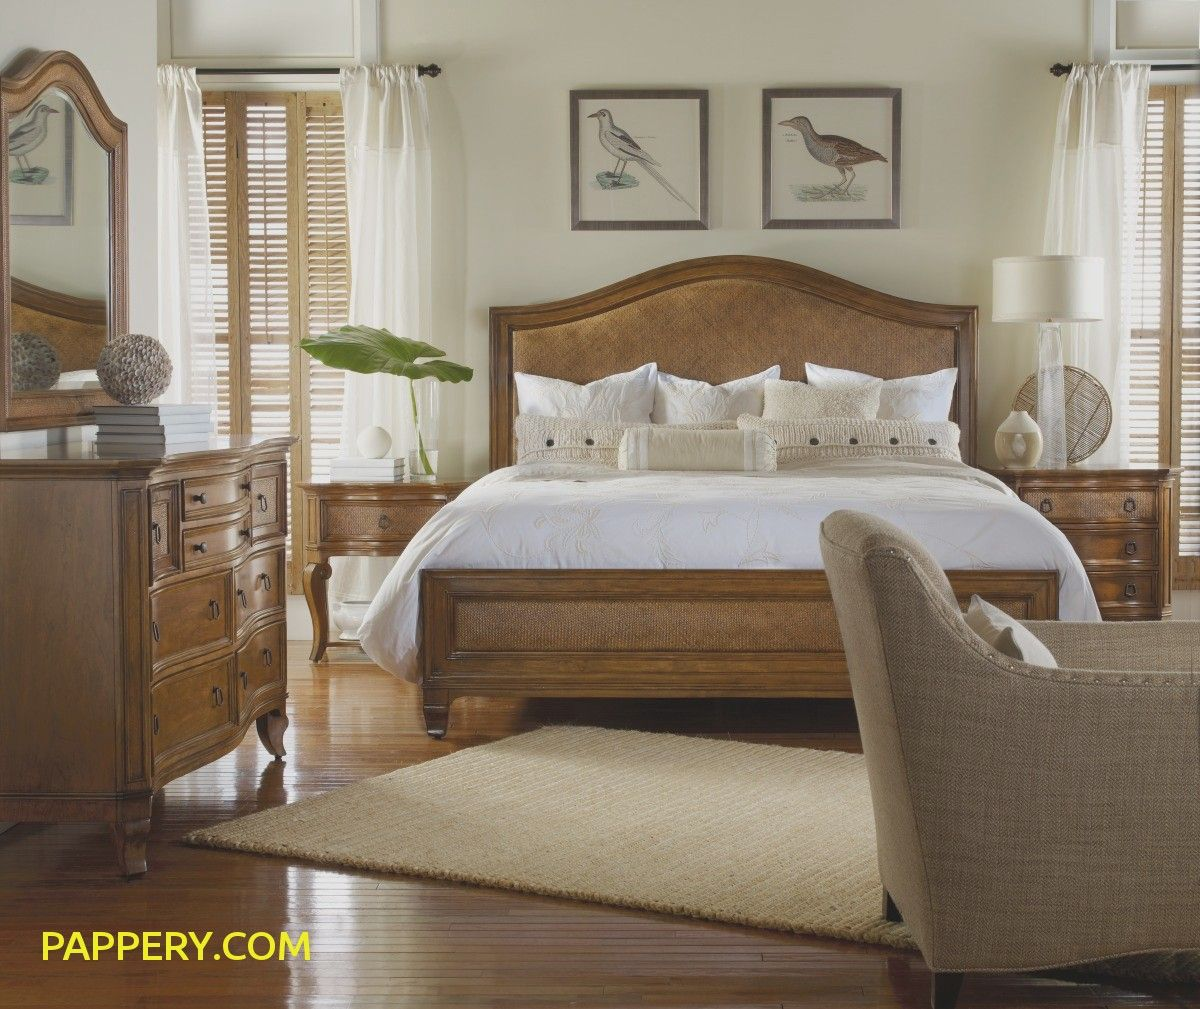 Elegant Bedroom Furniture Inspiration Photos #palletbedroomfurniture